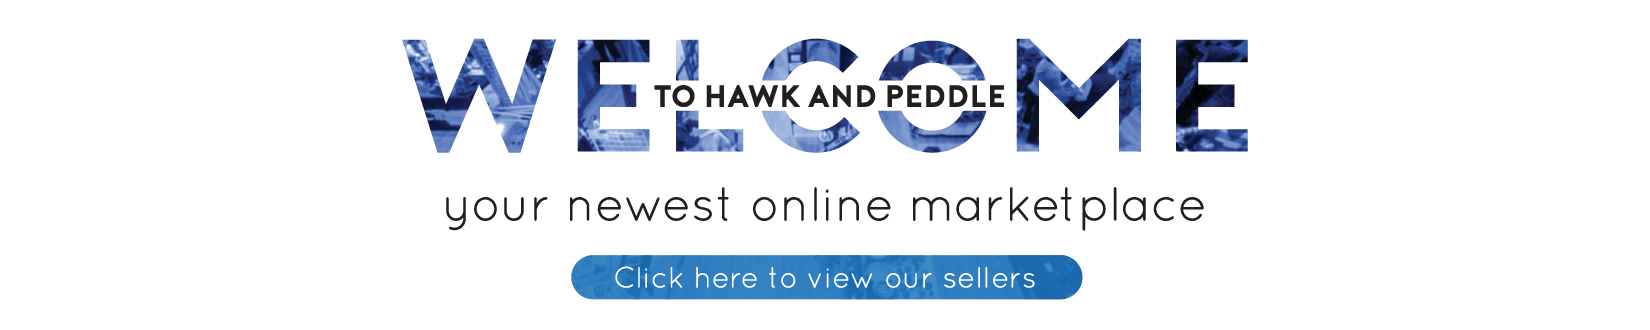 Welcome to Hawk and Peddle